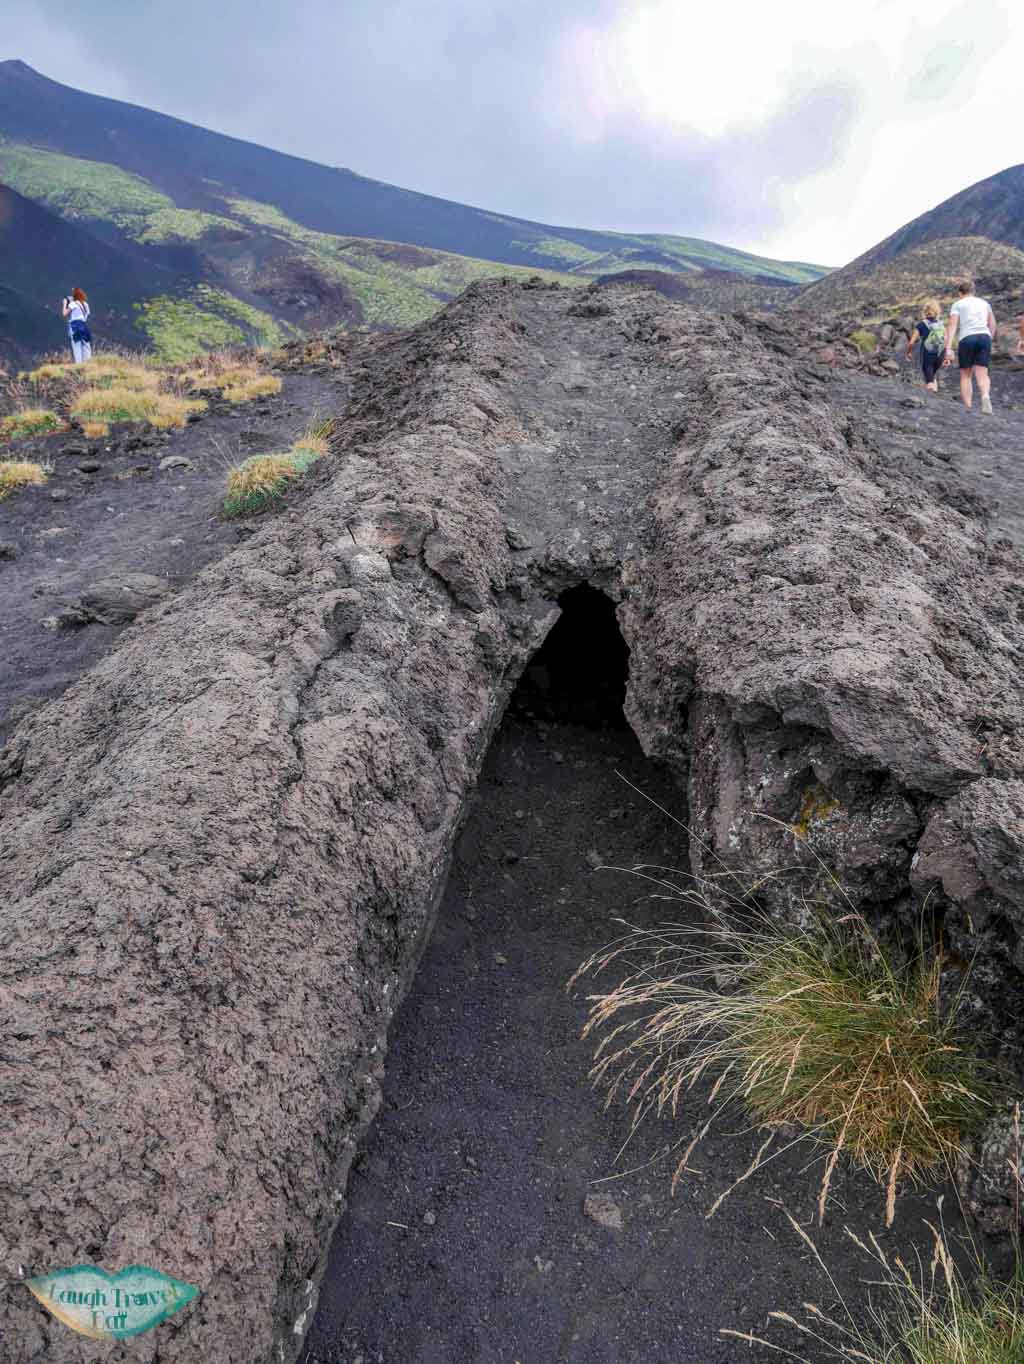 Entrance of a small lava tube amidst the lava field on Mount Etna, Catania, Sicily | Laugh Travel Eat